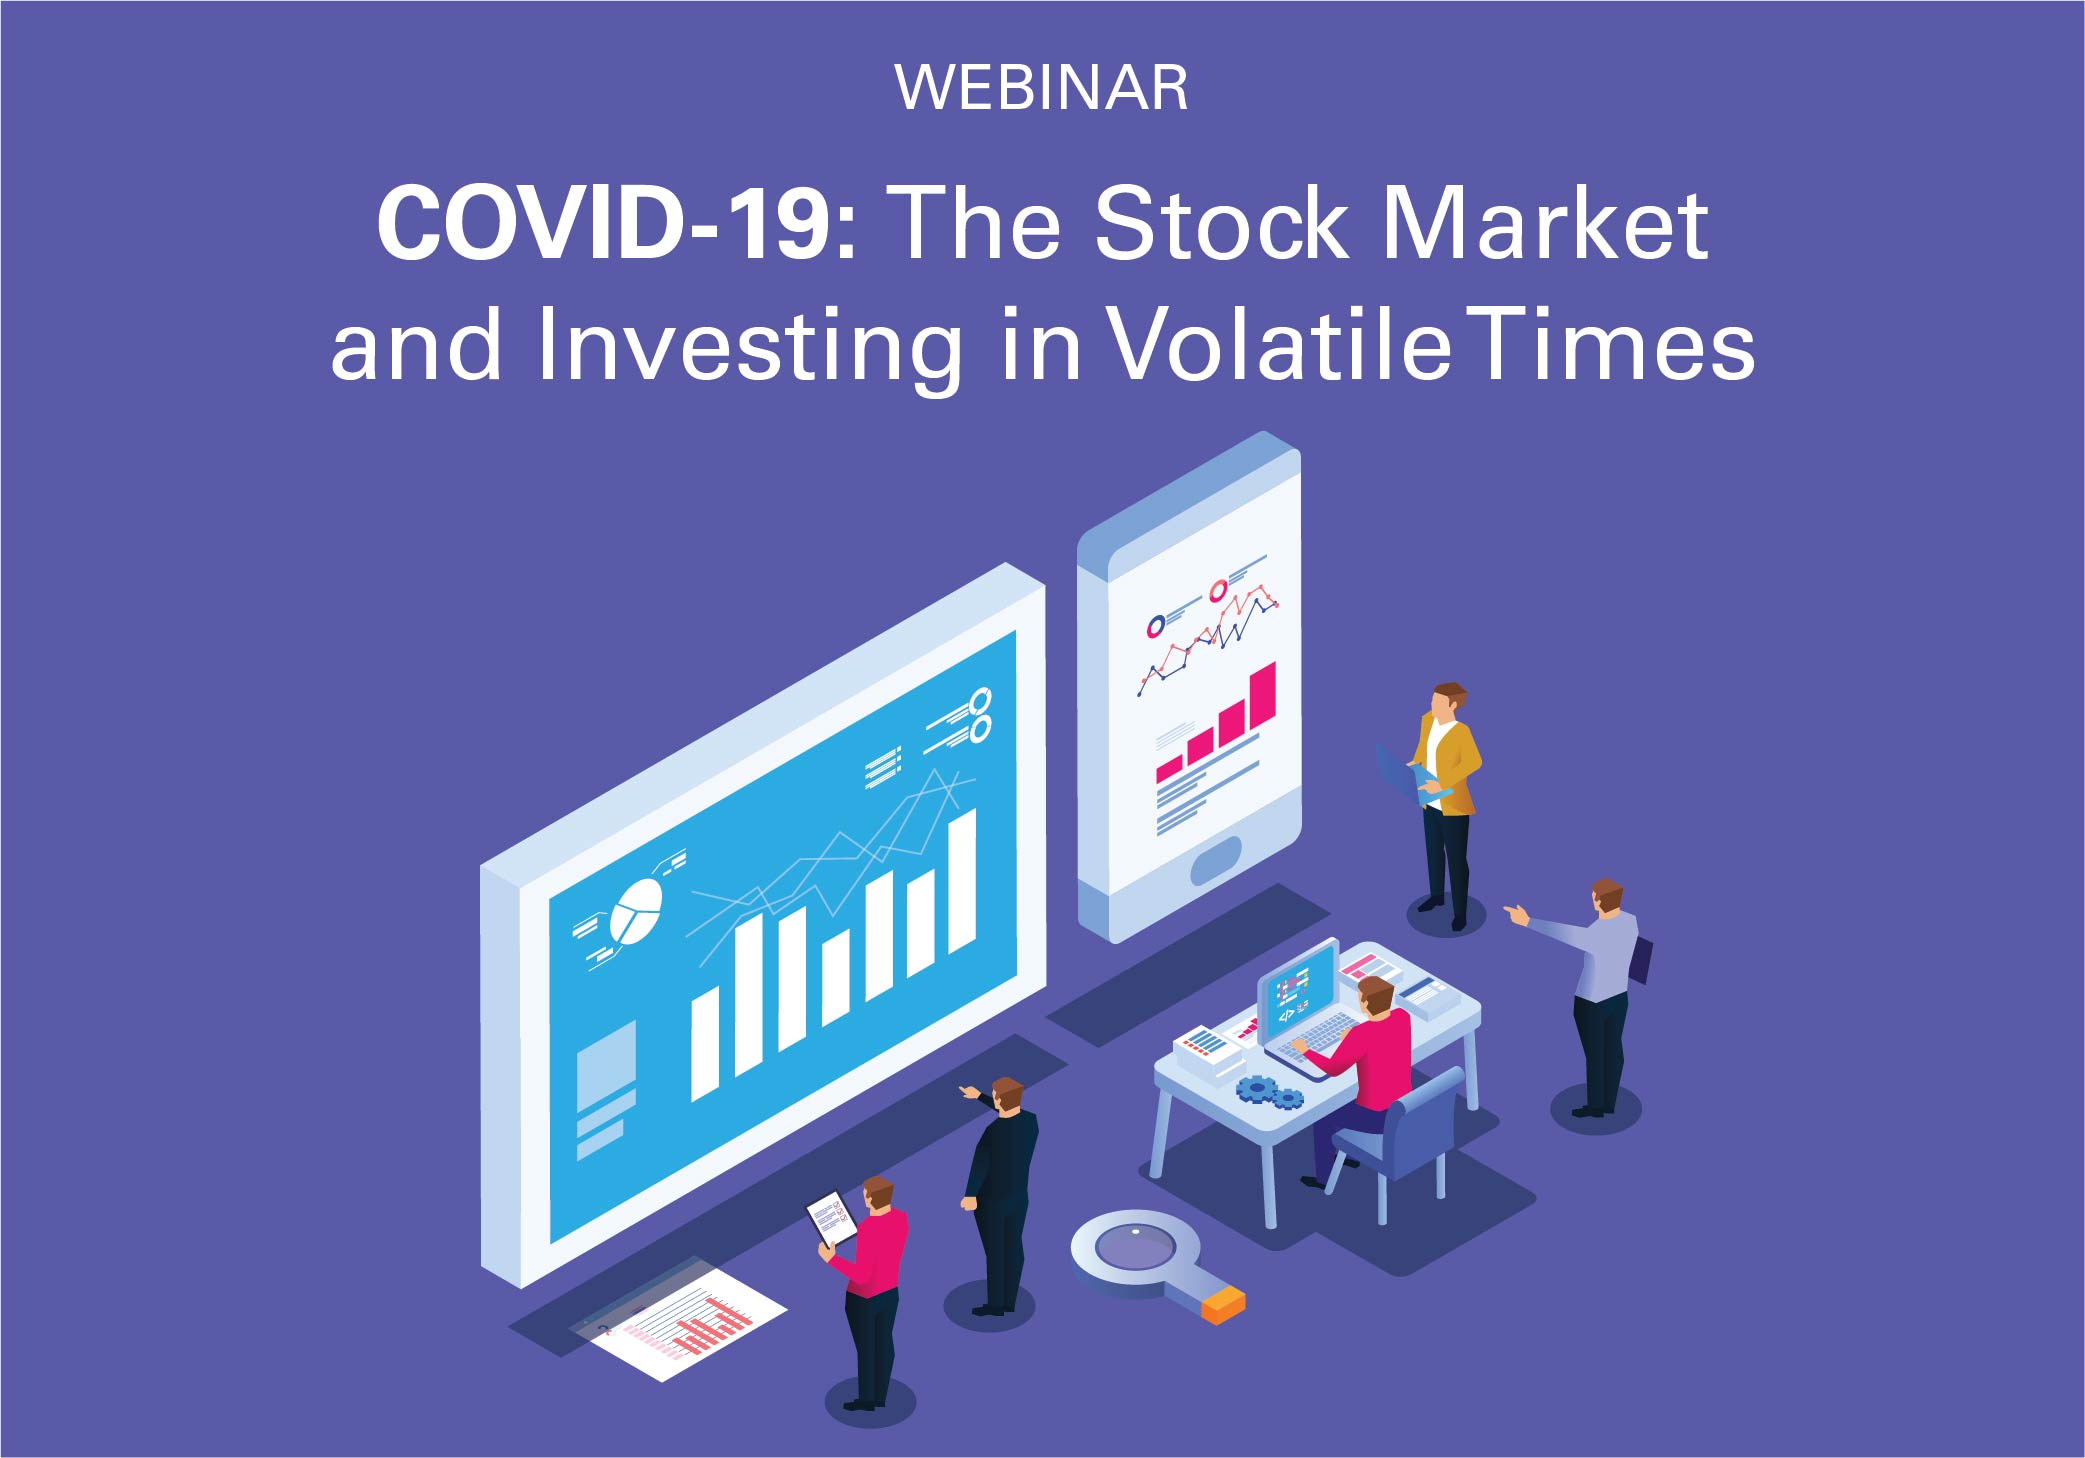 webinar covid-19: the stock market and investing in volatile times